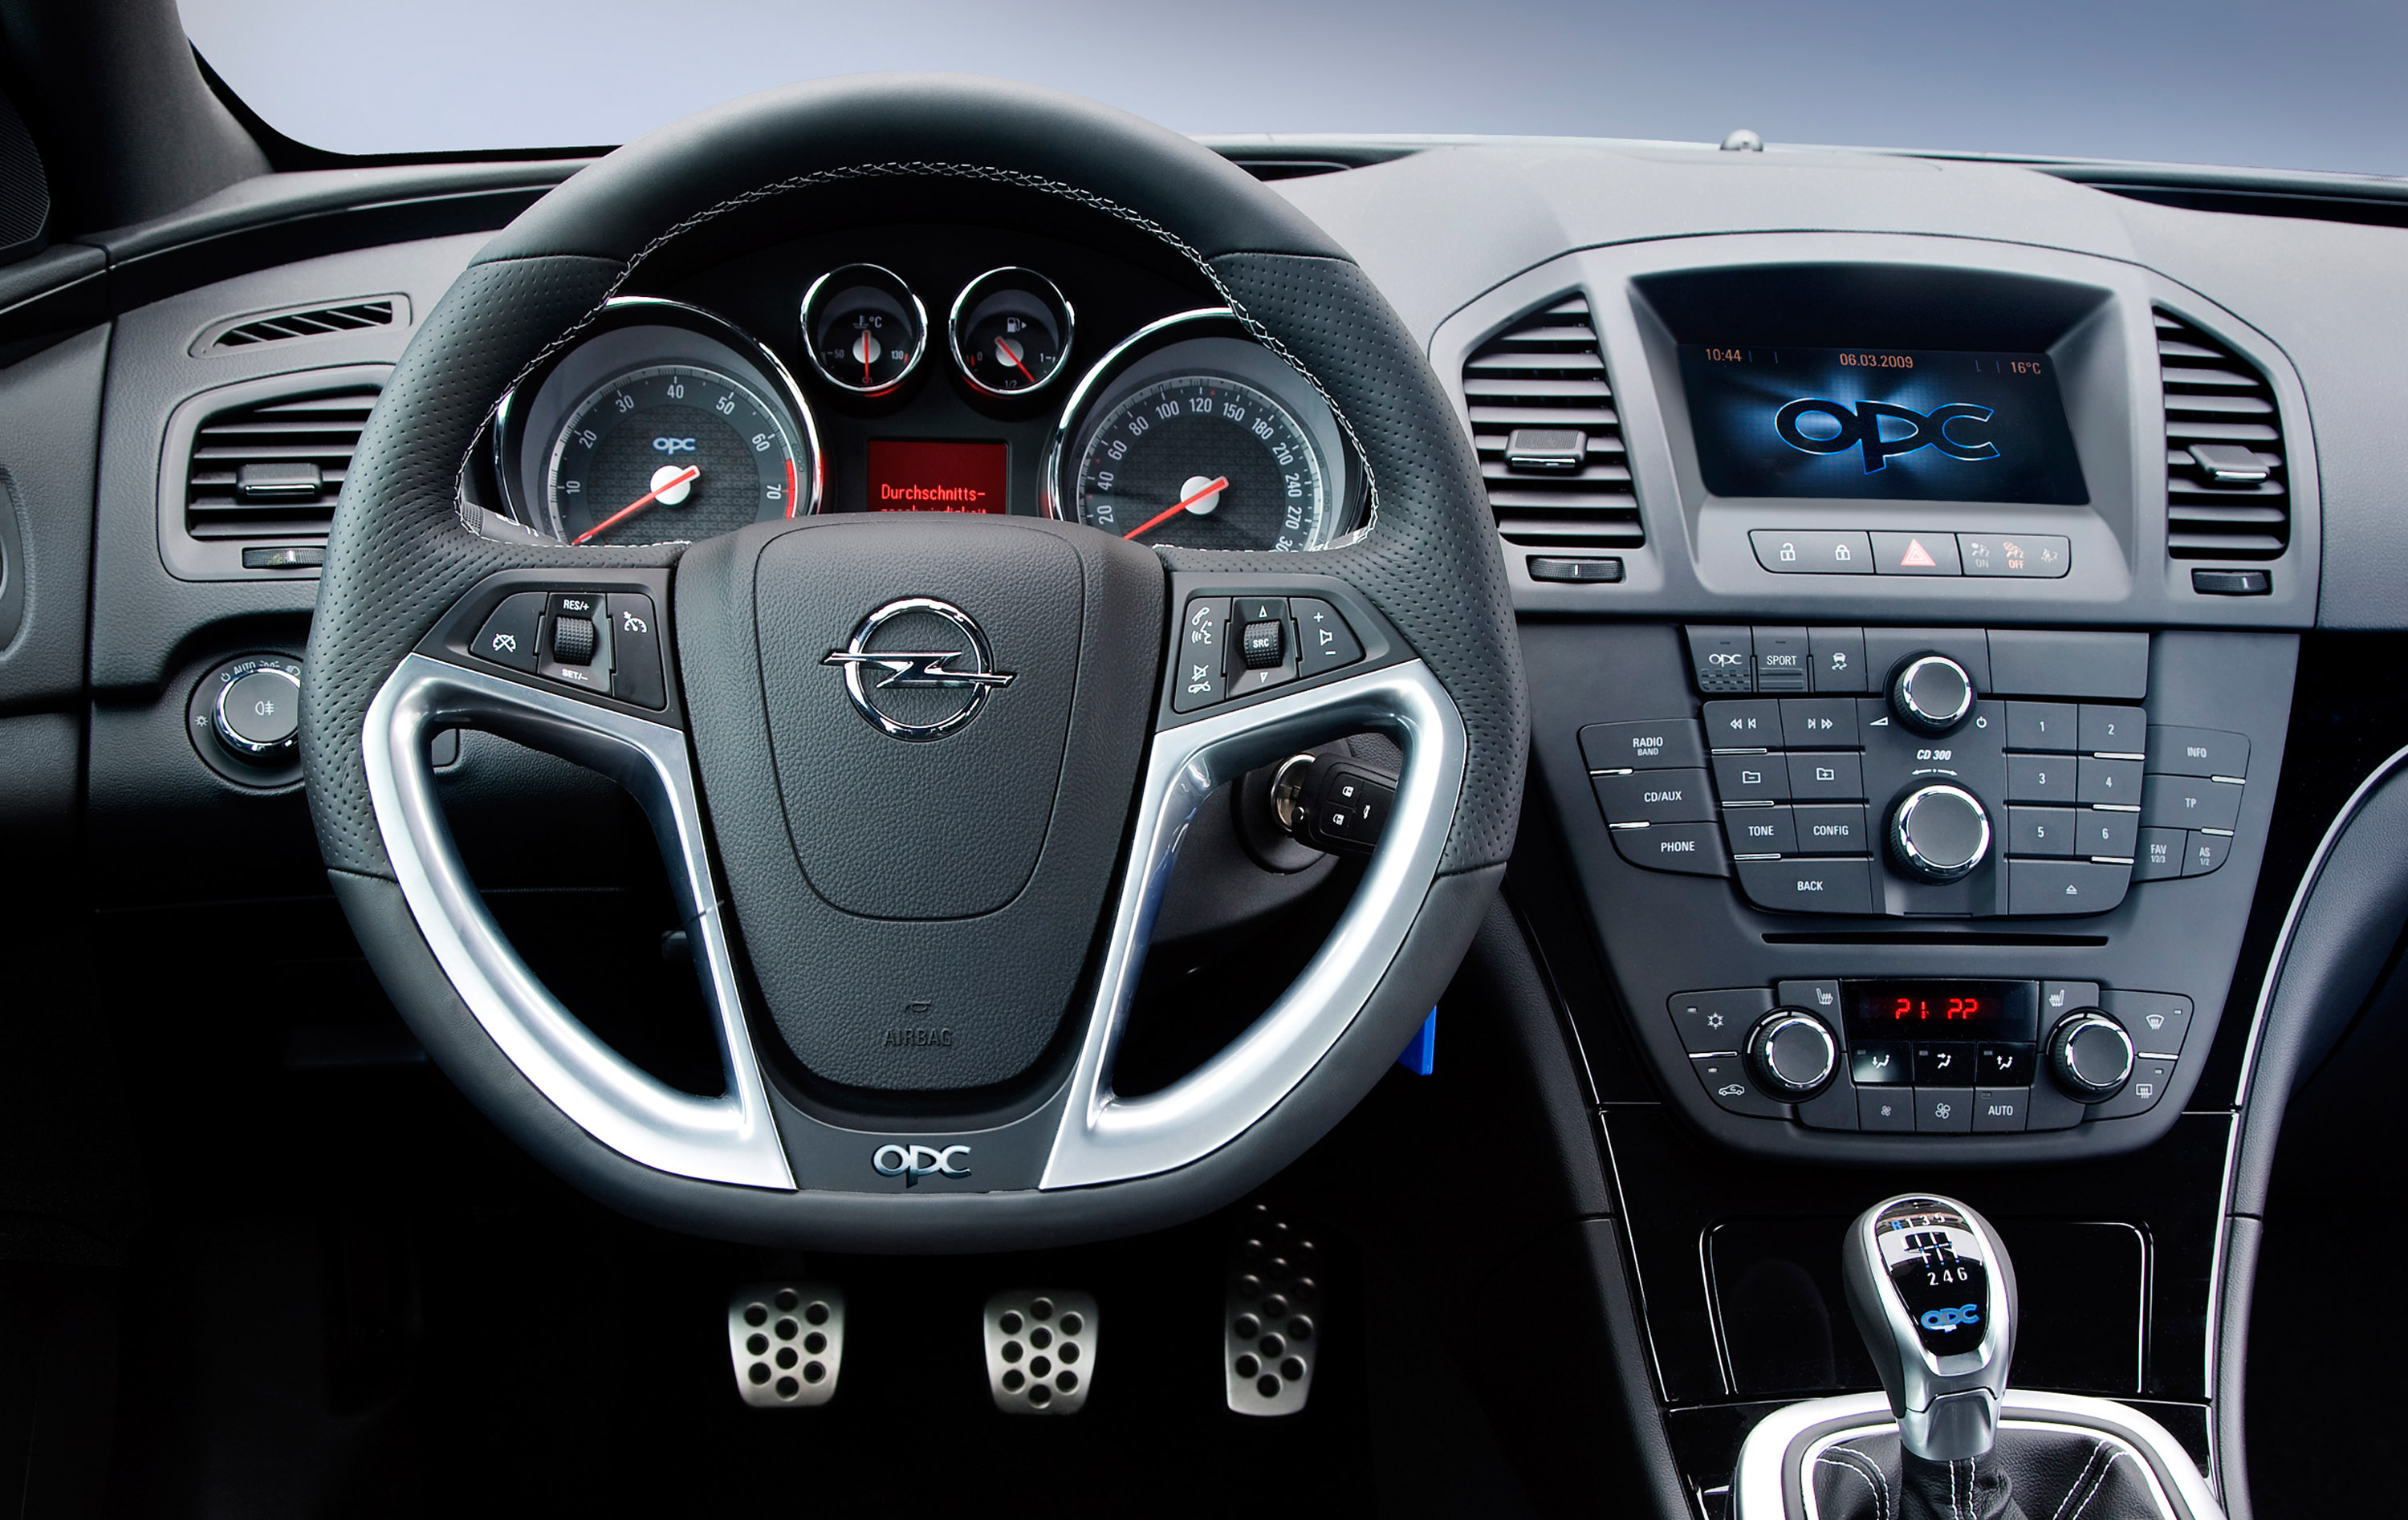 Opel Insignia OPC - Picture 22550